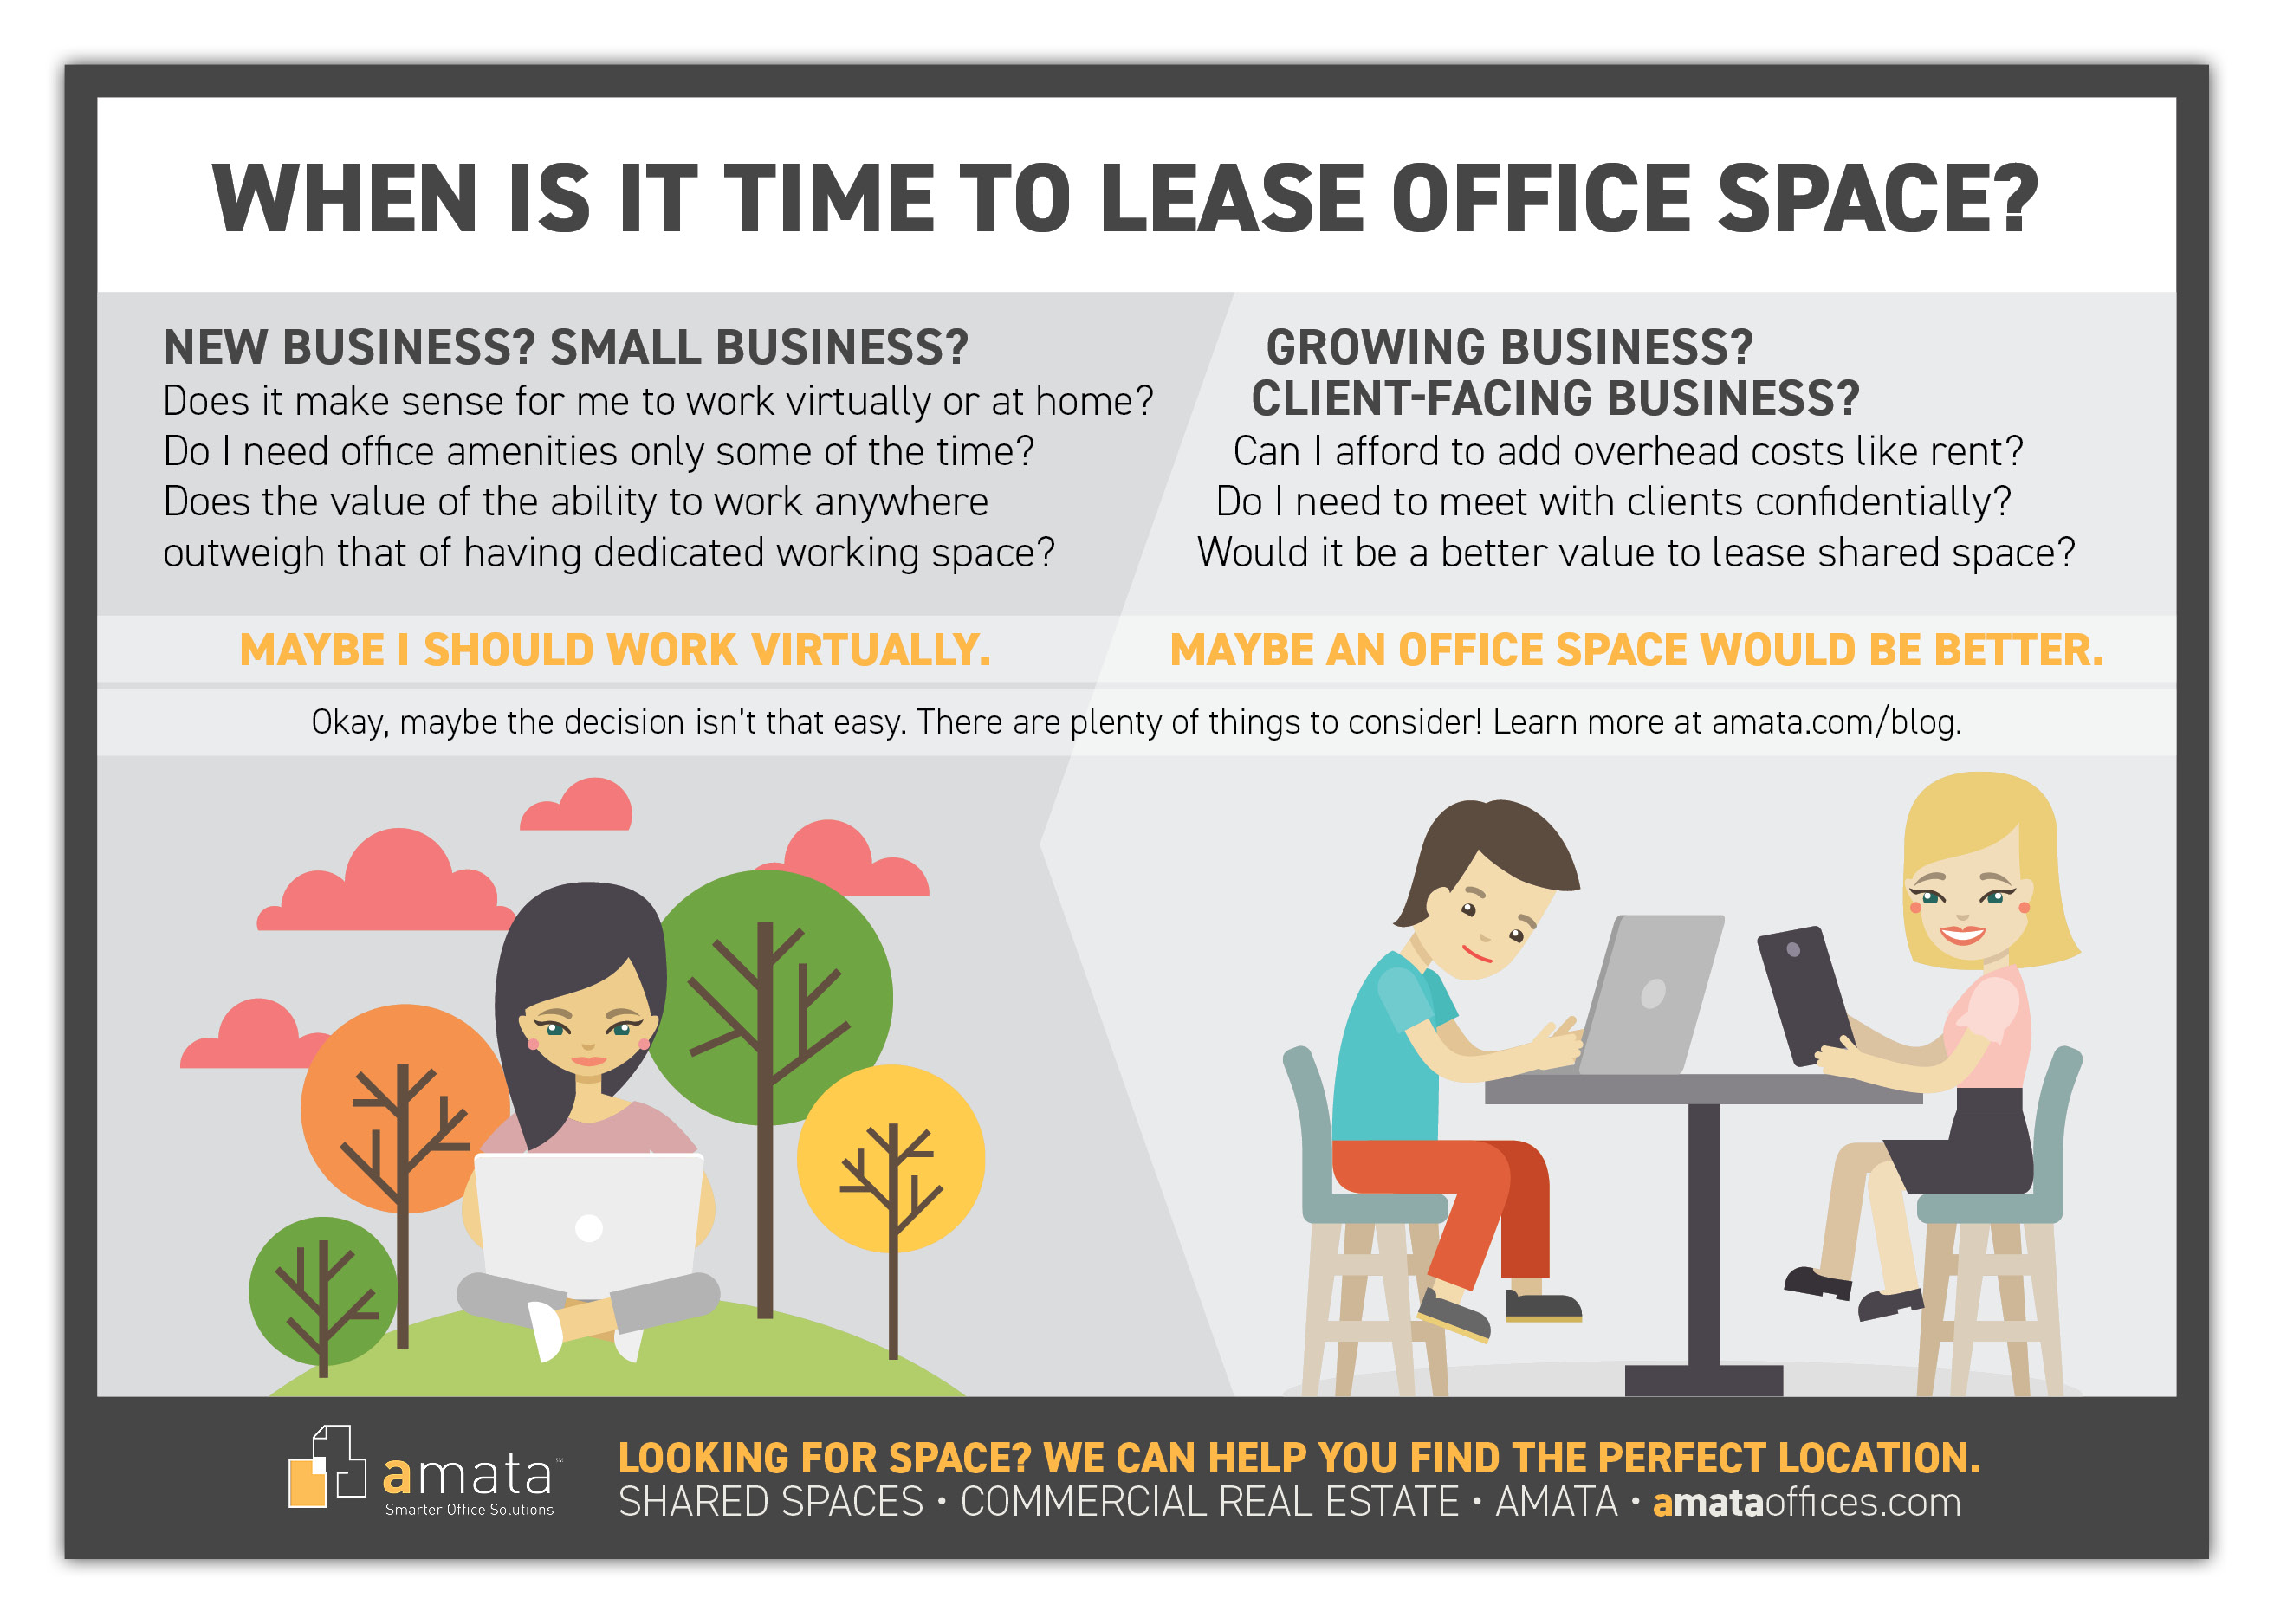 When Is It Time to Lease Office Space